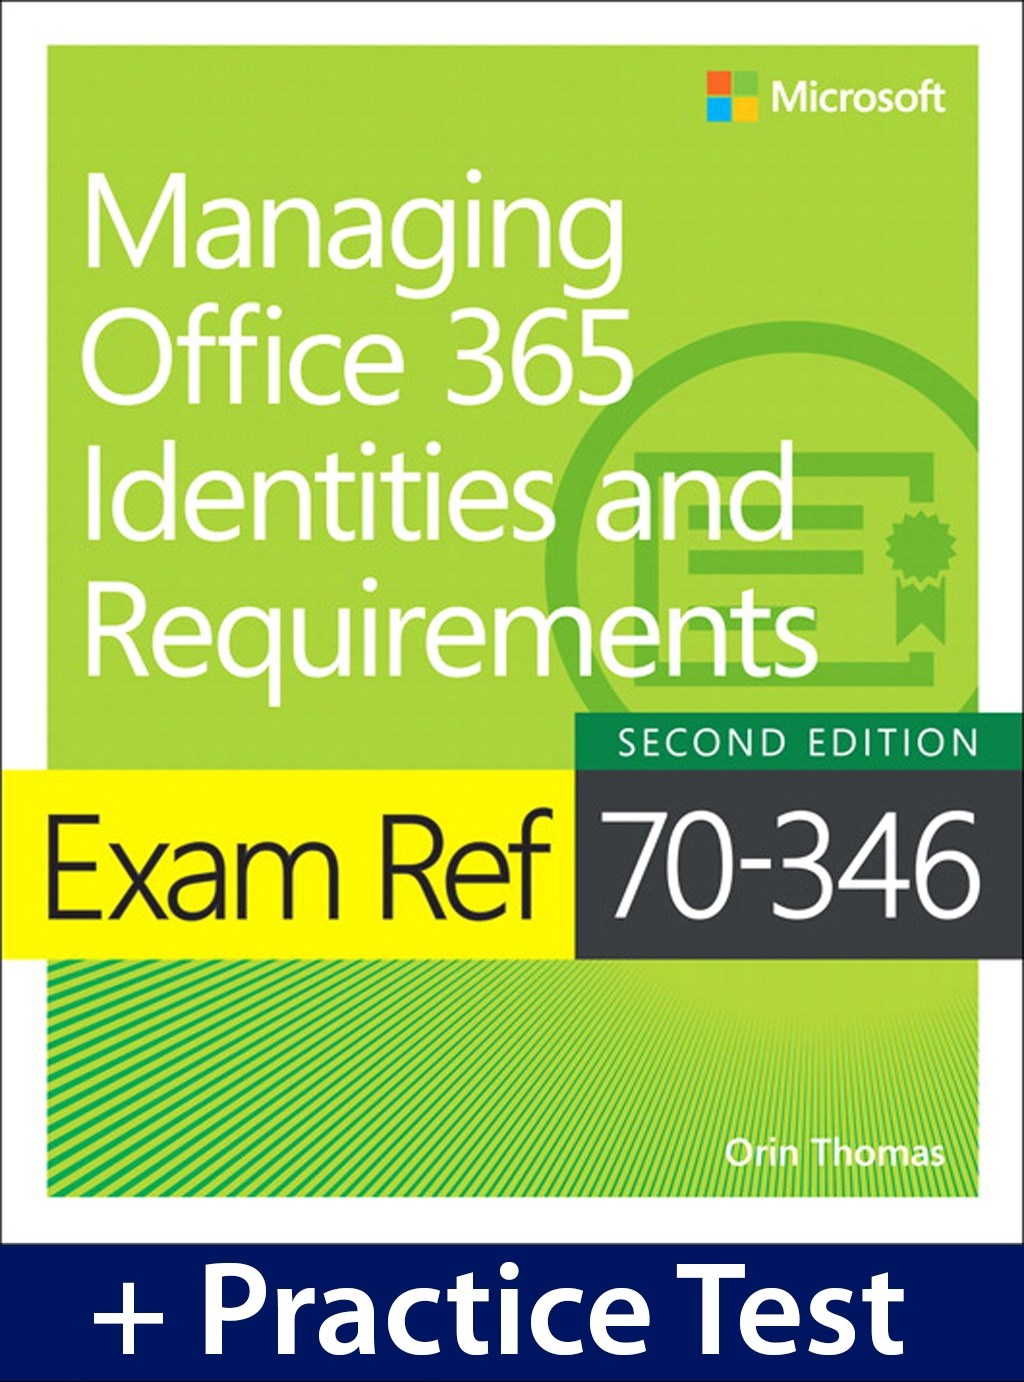 Exam Ref 70-346 Managing Office 365 Identities and Requirements with Practice Test Access, 2nd Edition